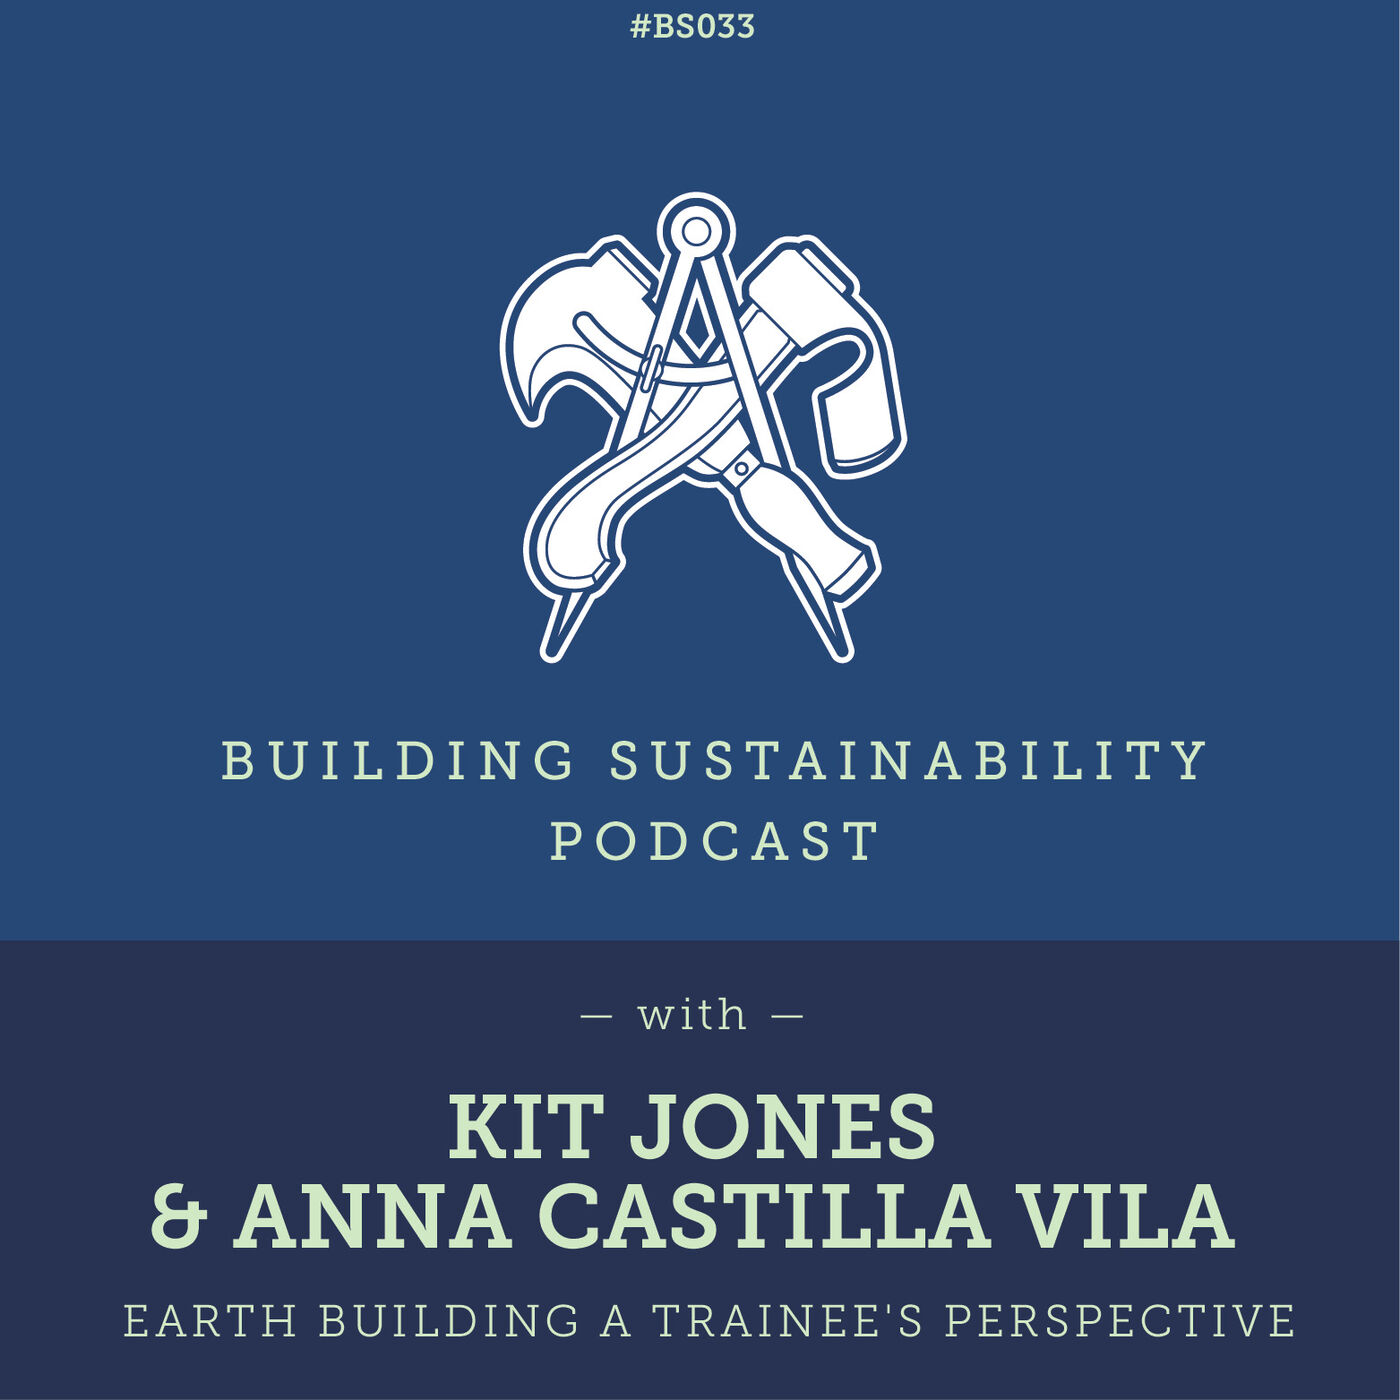 Earth Building a trainee's perspective - Kit Jones & Anna Castilla Vila - Pt1